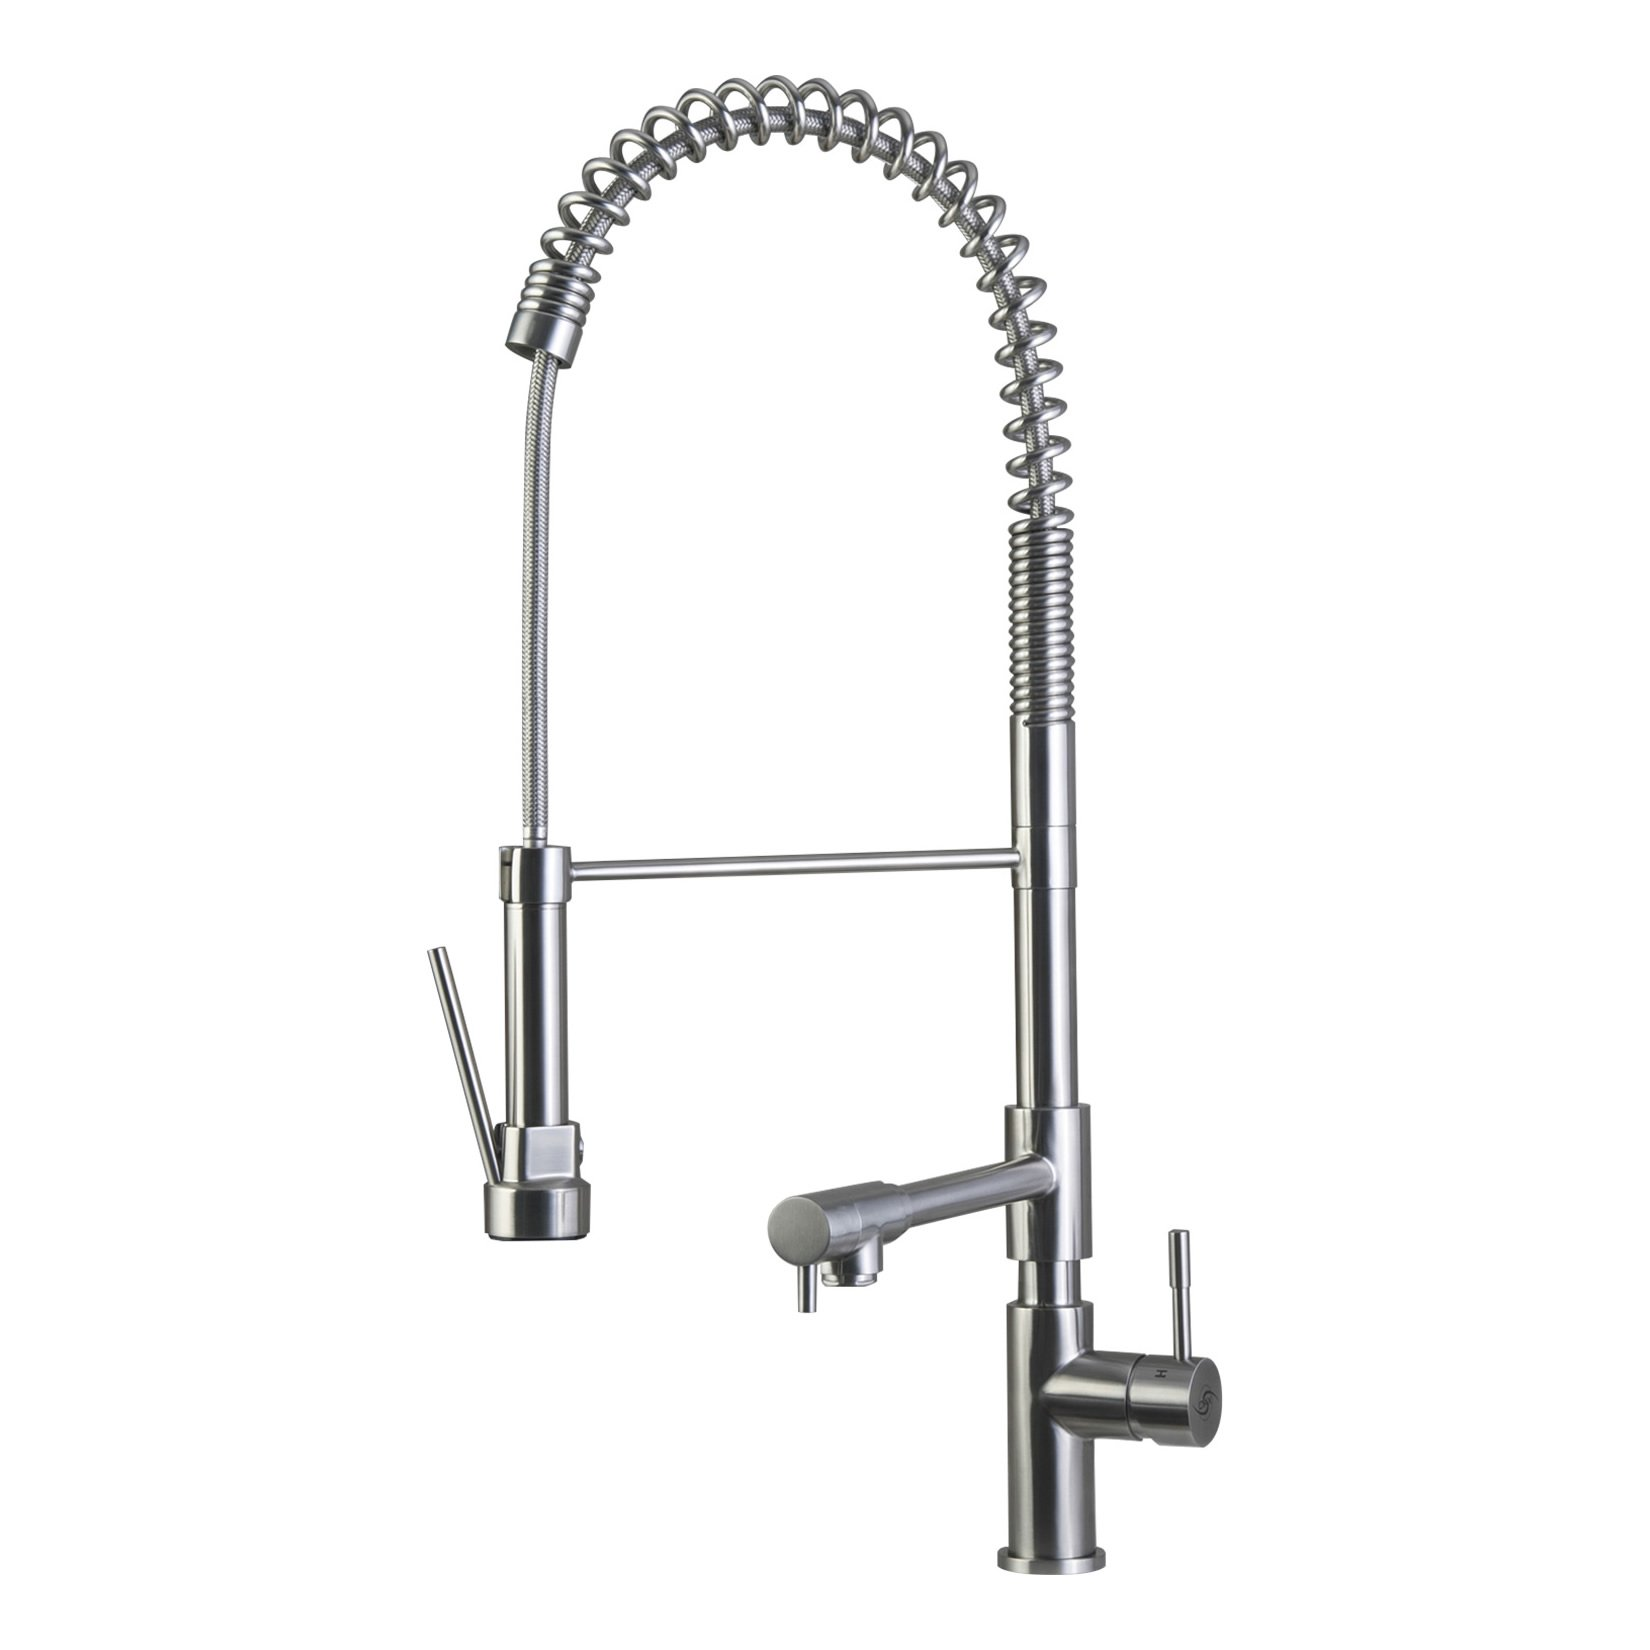 DAX Commercial Style Pull Down with Double Spout Kitchen Faucet, Swivel, Stainless Steel Shower Head and Body, Brushed Finish, DAX-C001-05, Size 12 x 27-1/2 Inches